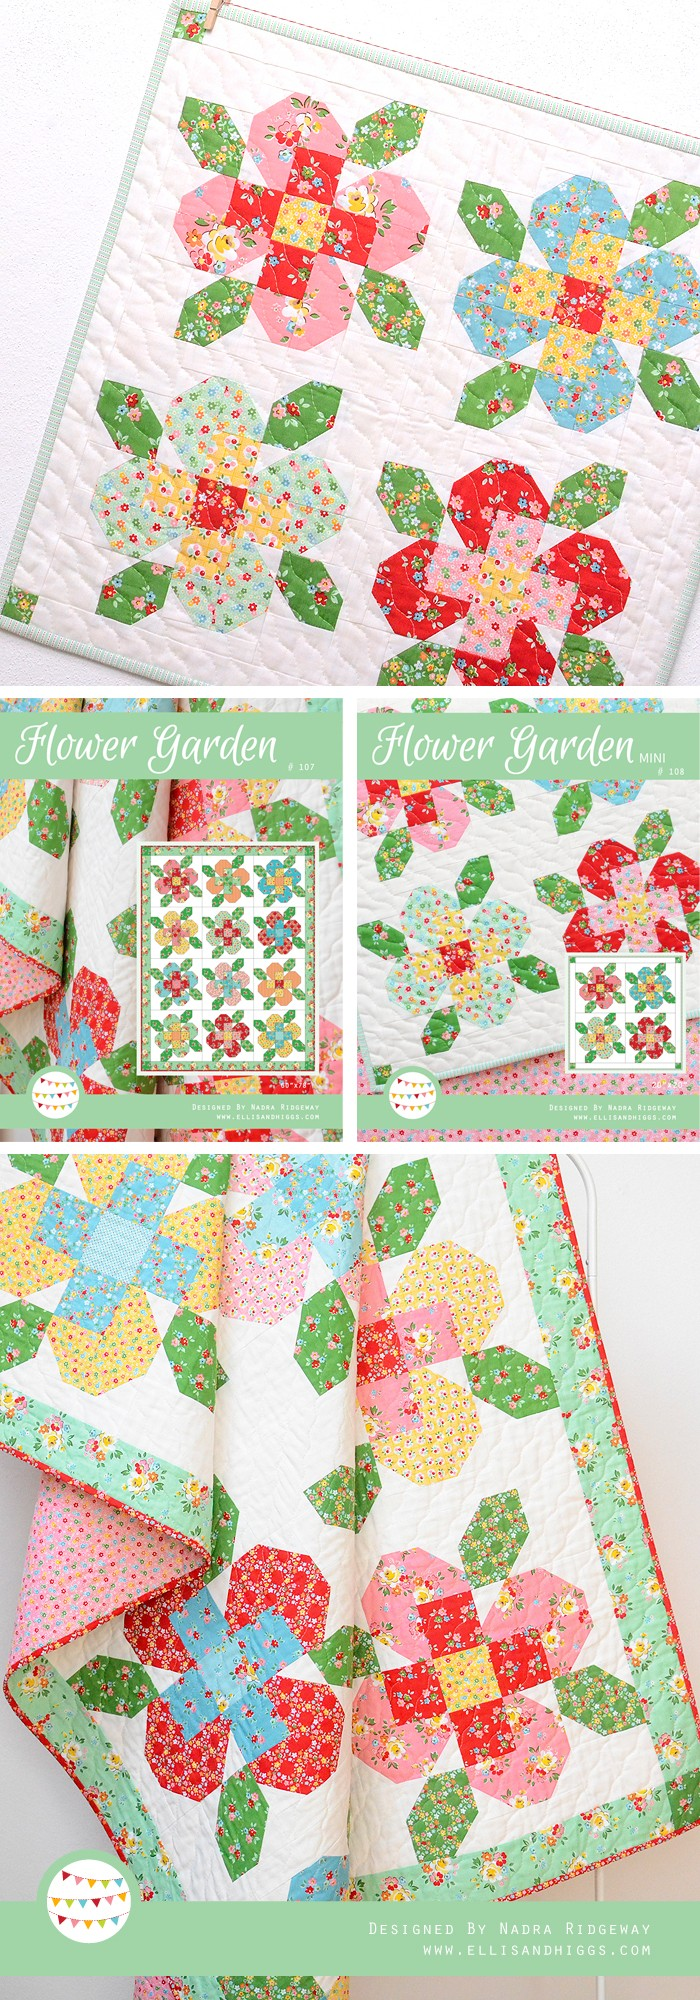 Flower Garden Quilts by Nadra Ridgeway